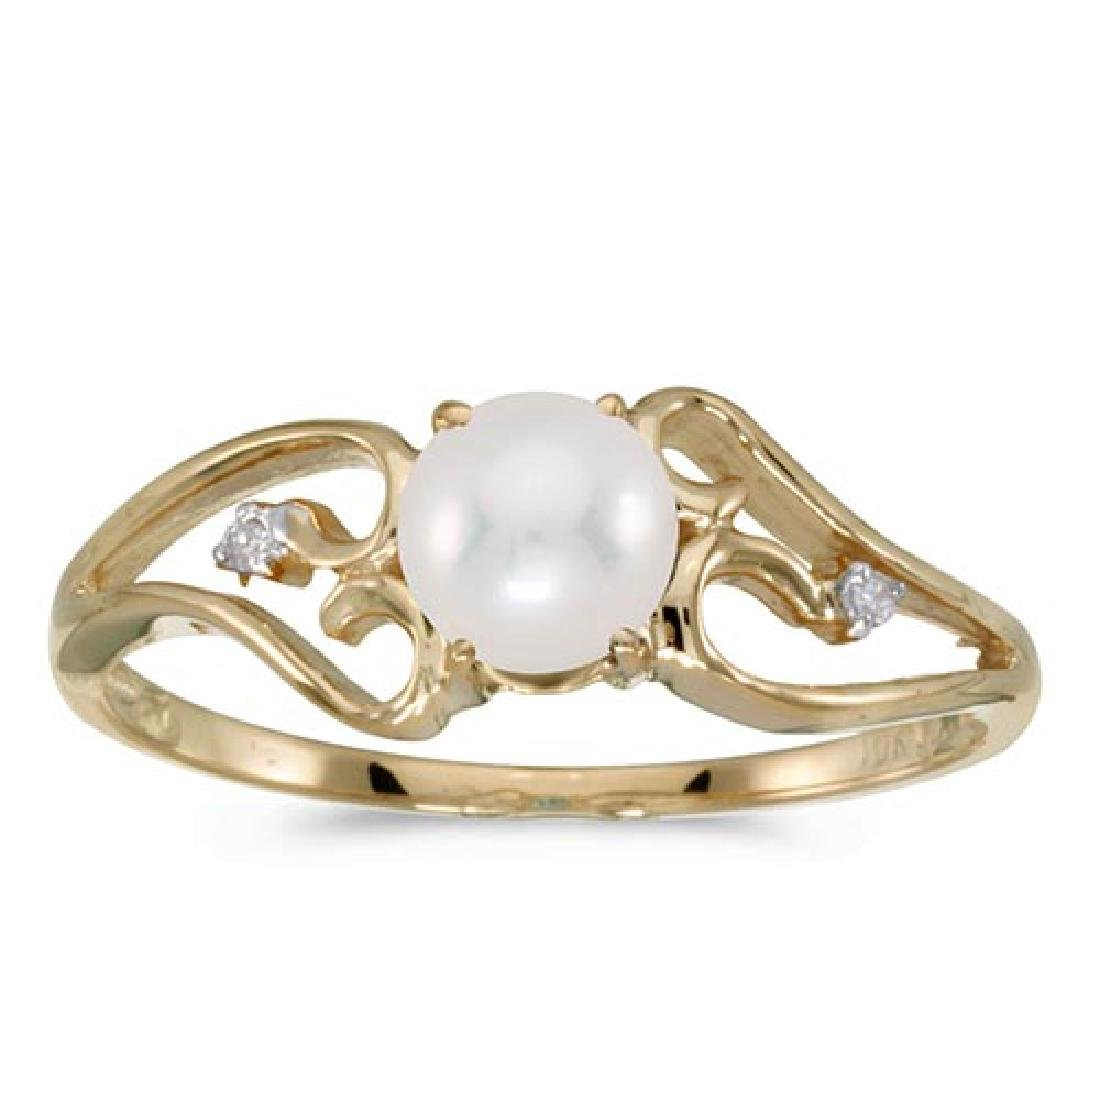 Certified 14k Yellow Gold Pearl And Diamond Ring 0.01 C